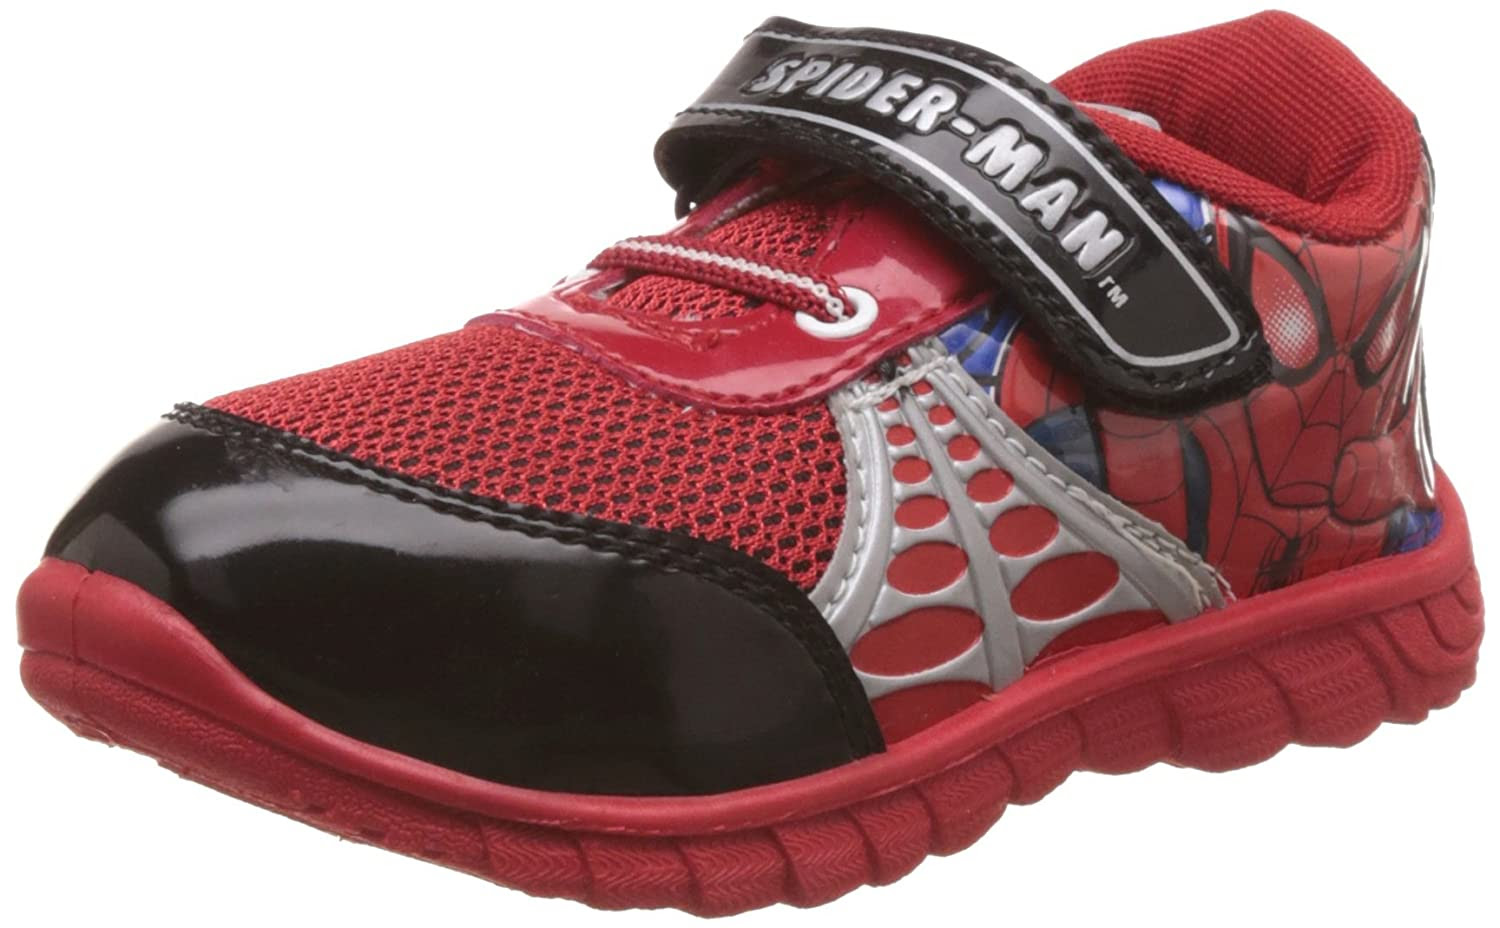 Deals on Spiderman Boy's Sports Shoes